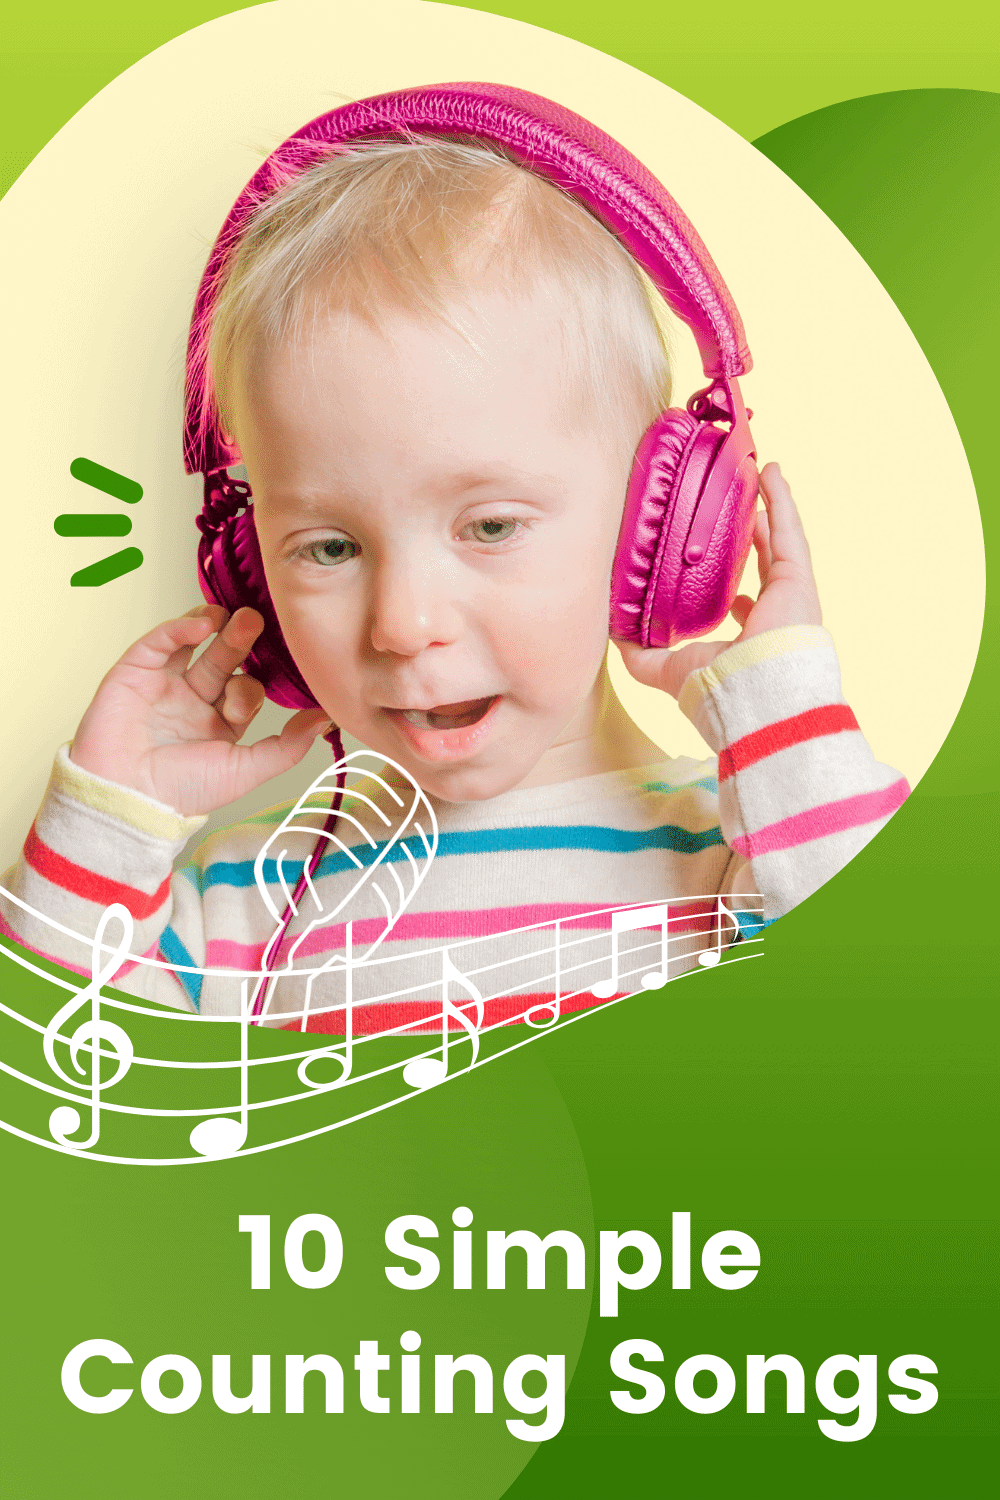 10 Simple Counting Songs for early years